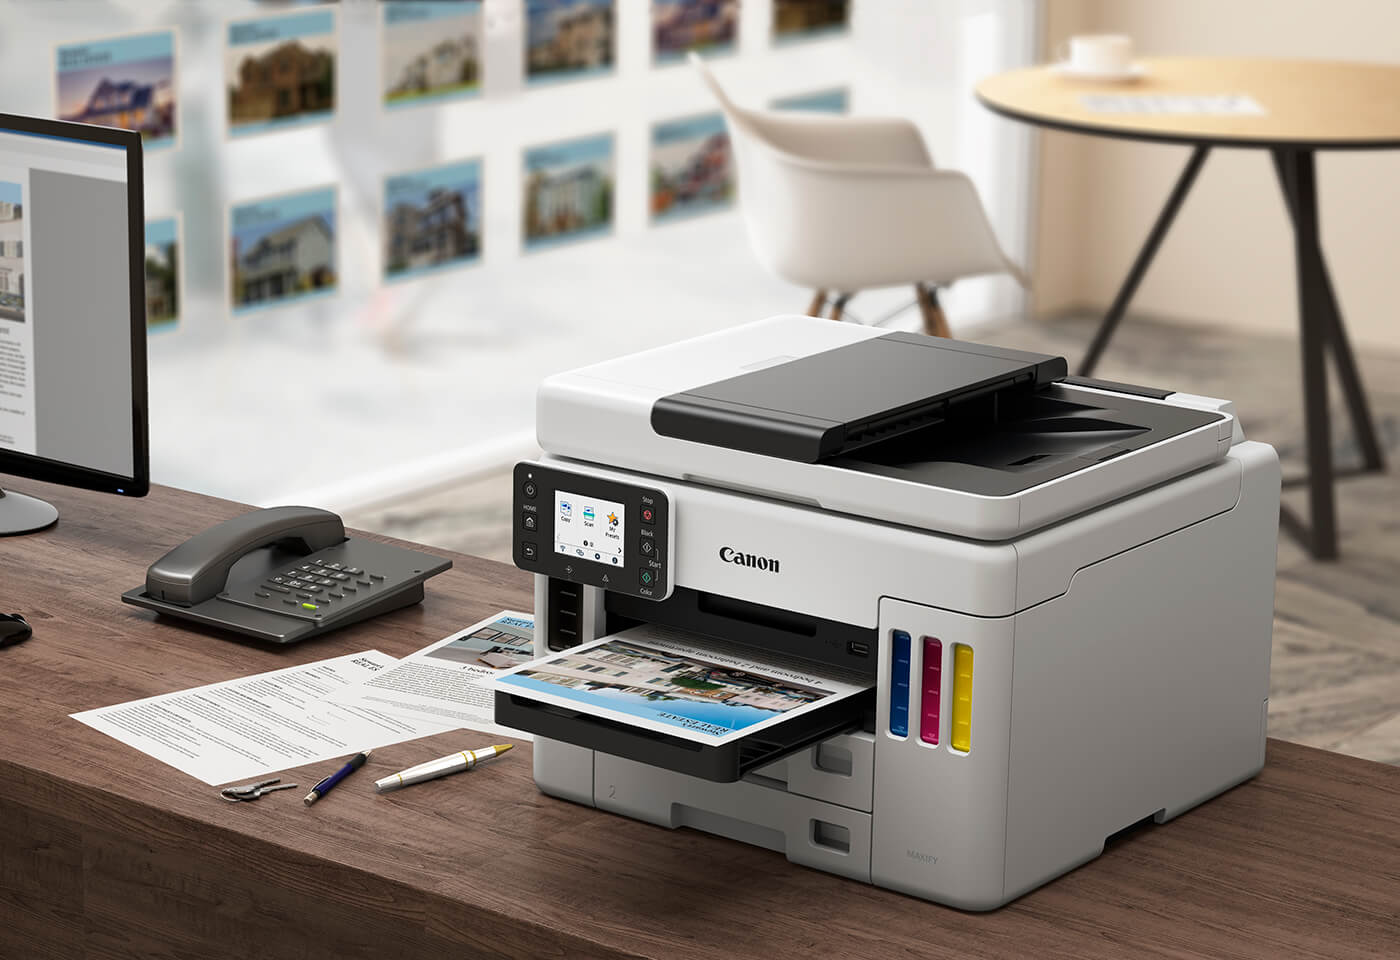 The MAXIFY GX7060 MegaTank maximum power consumption while printer is in use is less than 10%